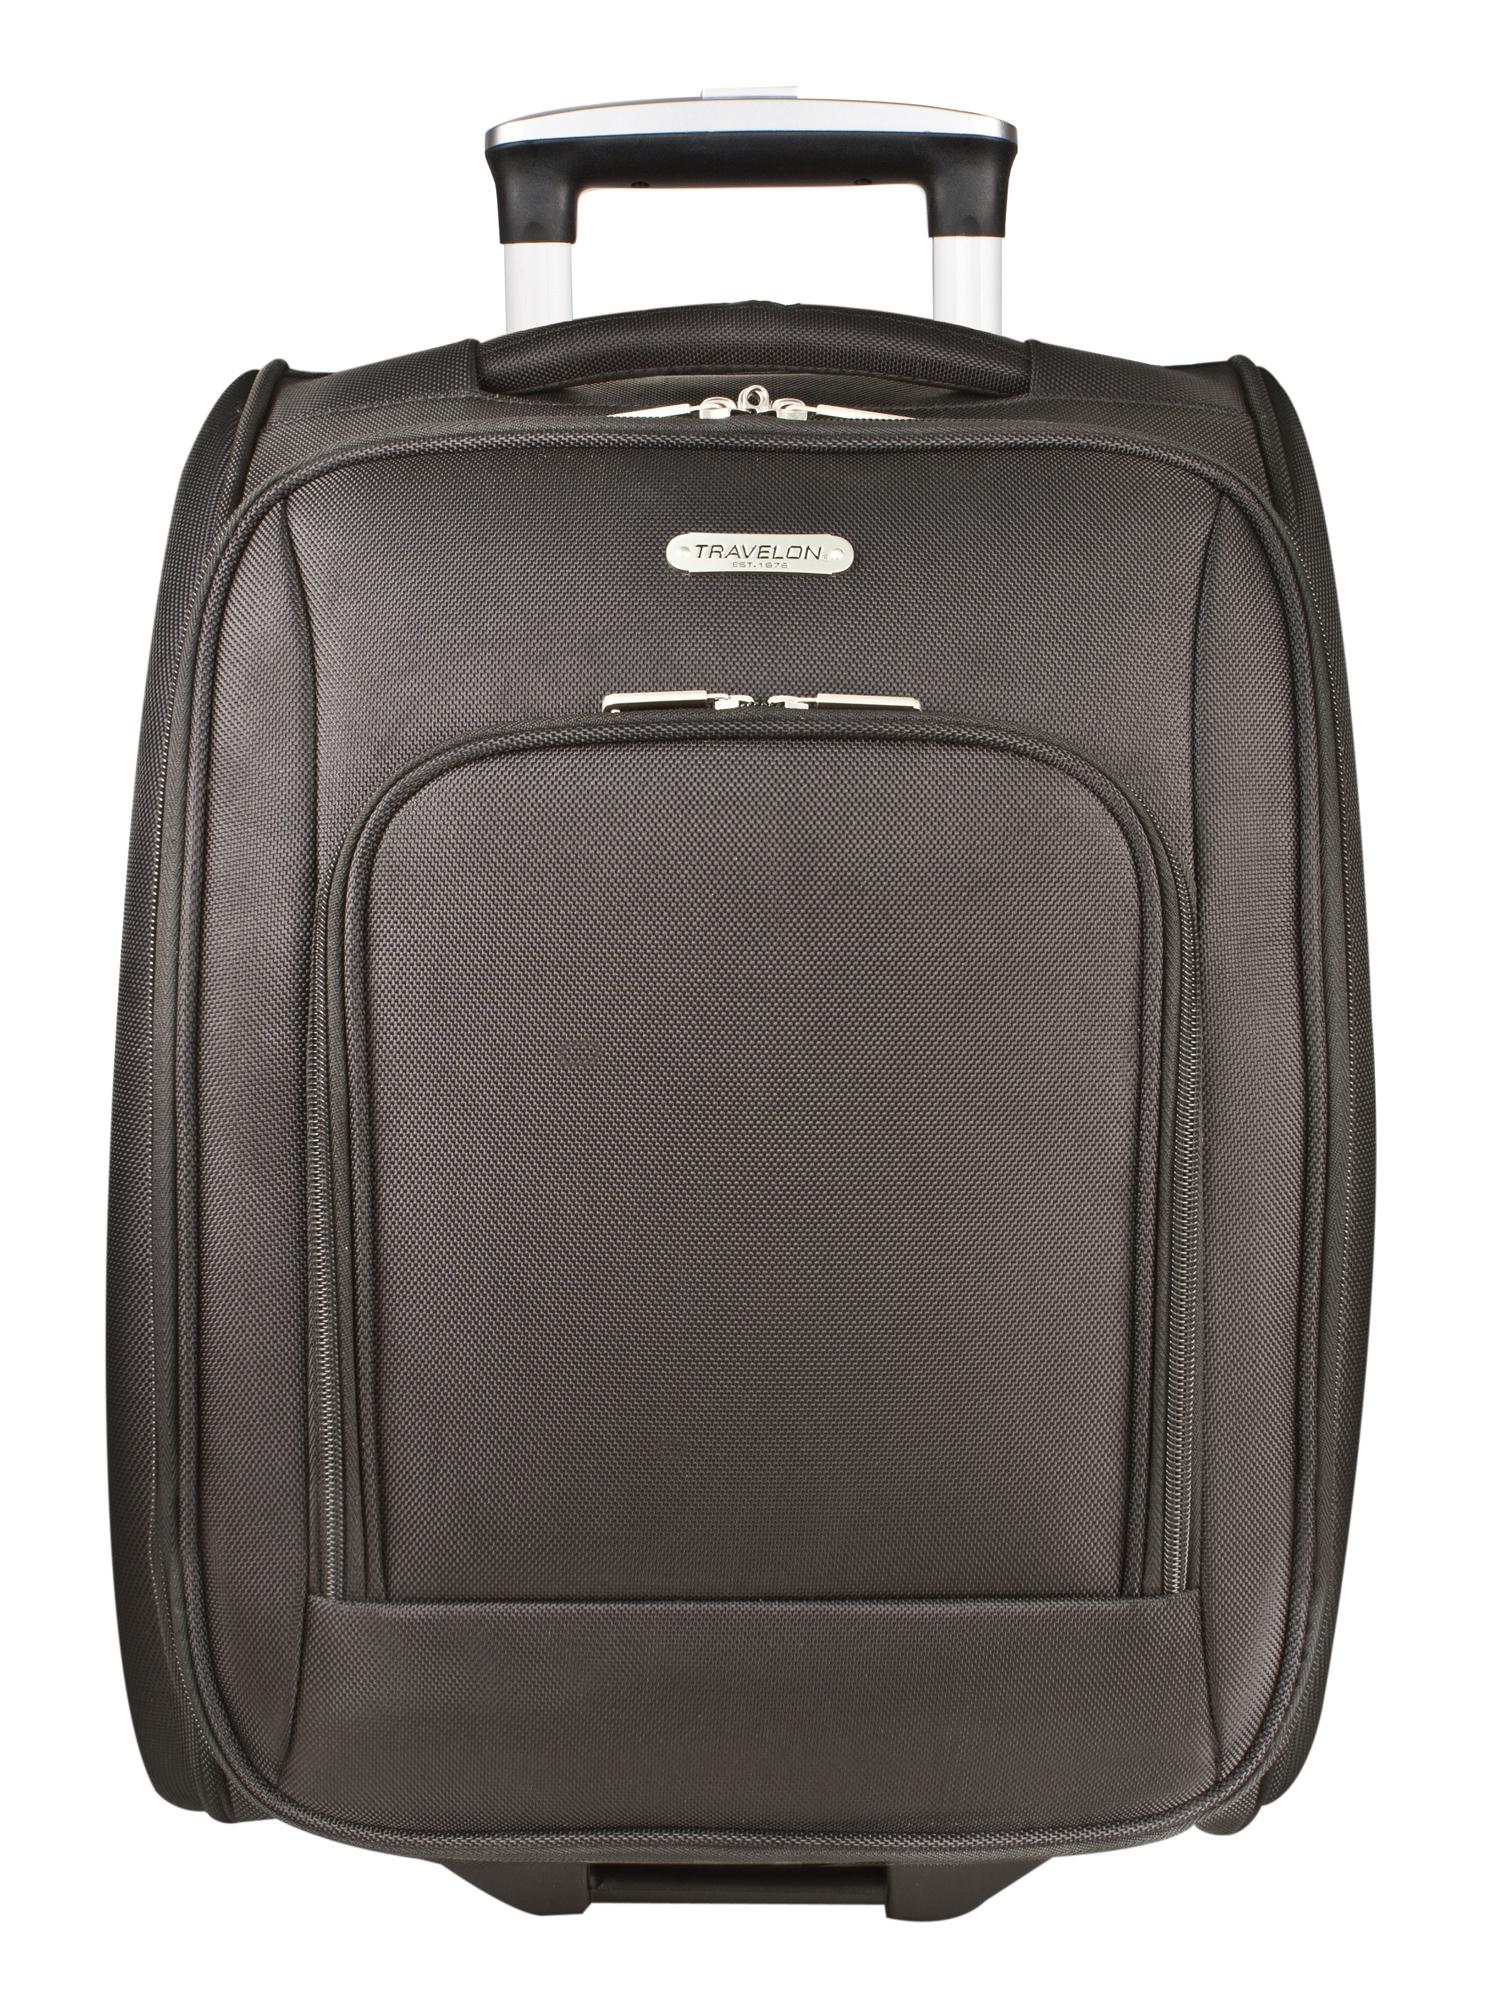 Travelon Wheeled Underseat Carry-On Bag